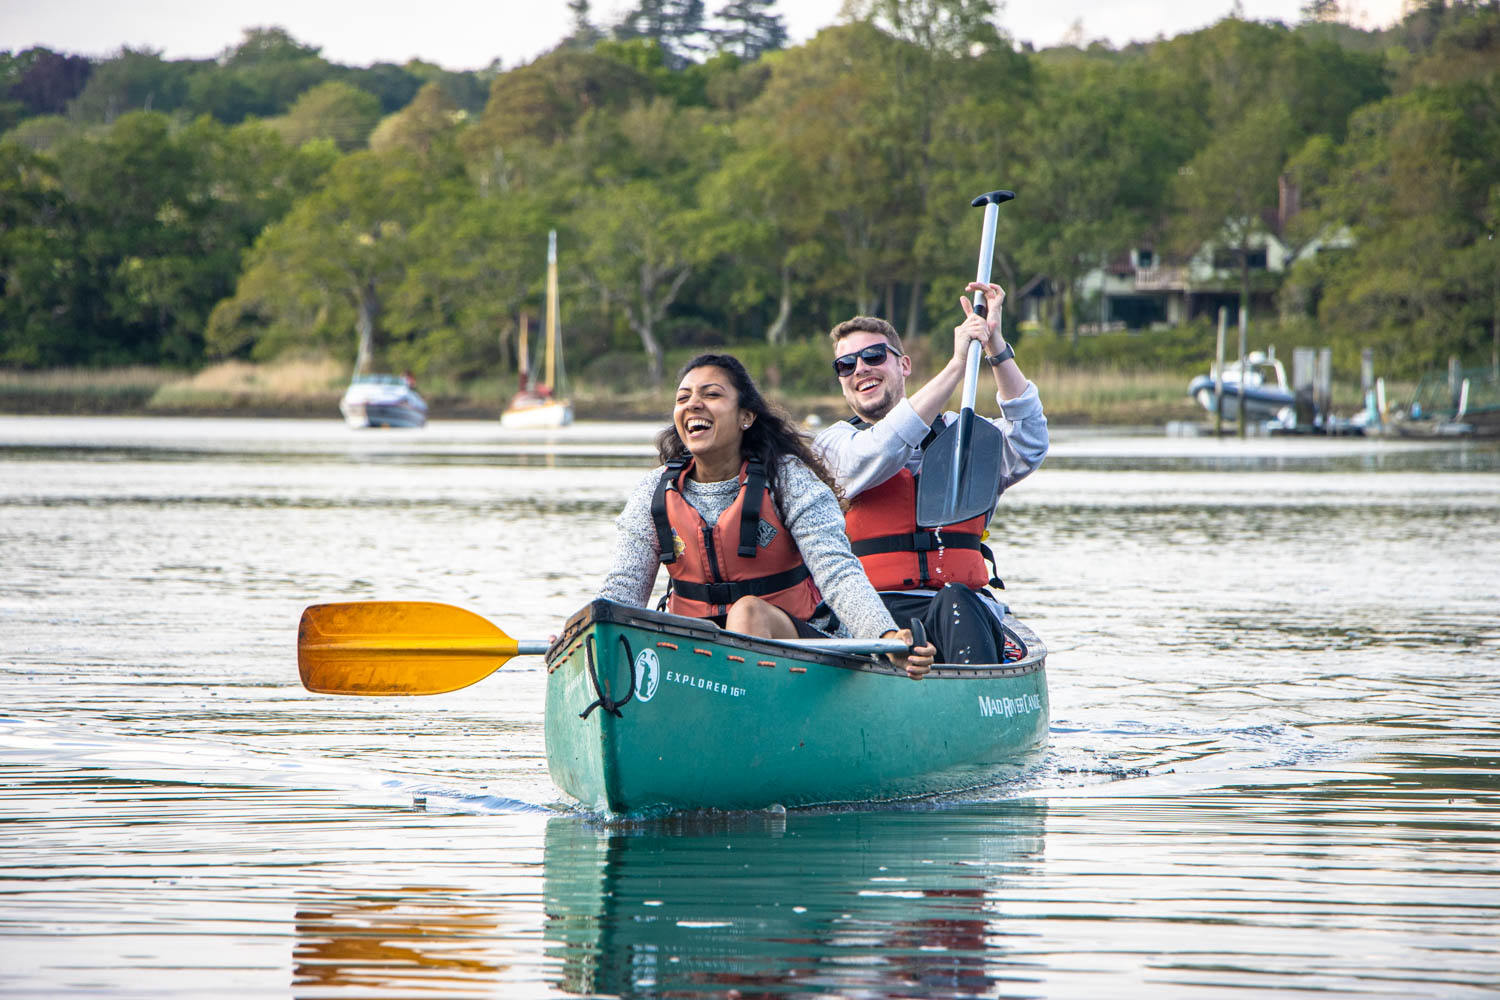 Whilst you're camping in the new forest, why not enjoy some fun outdoor activities?